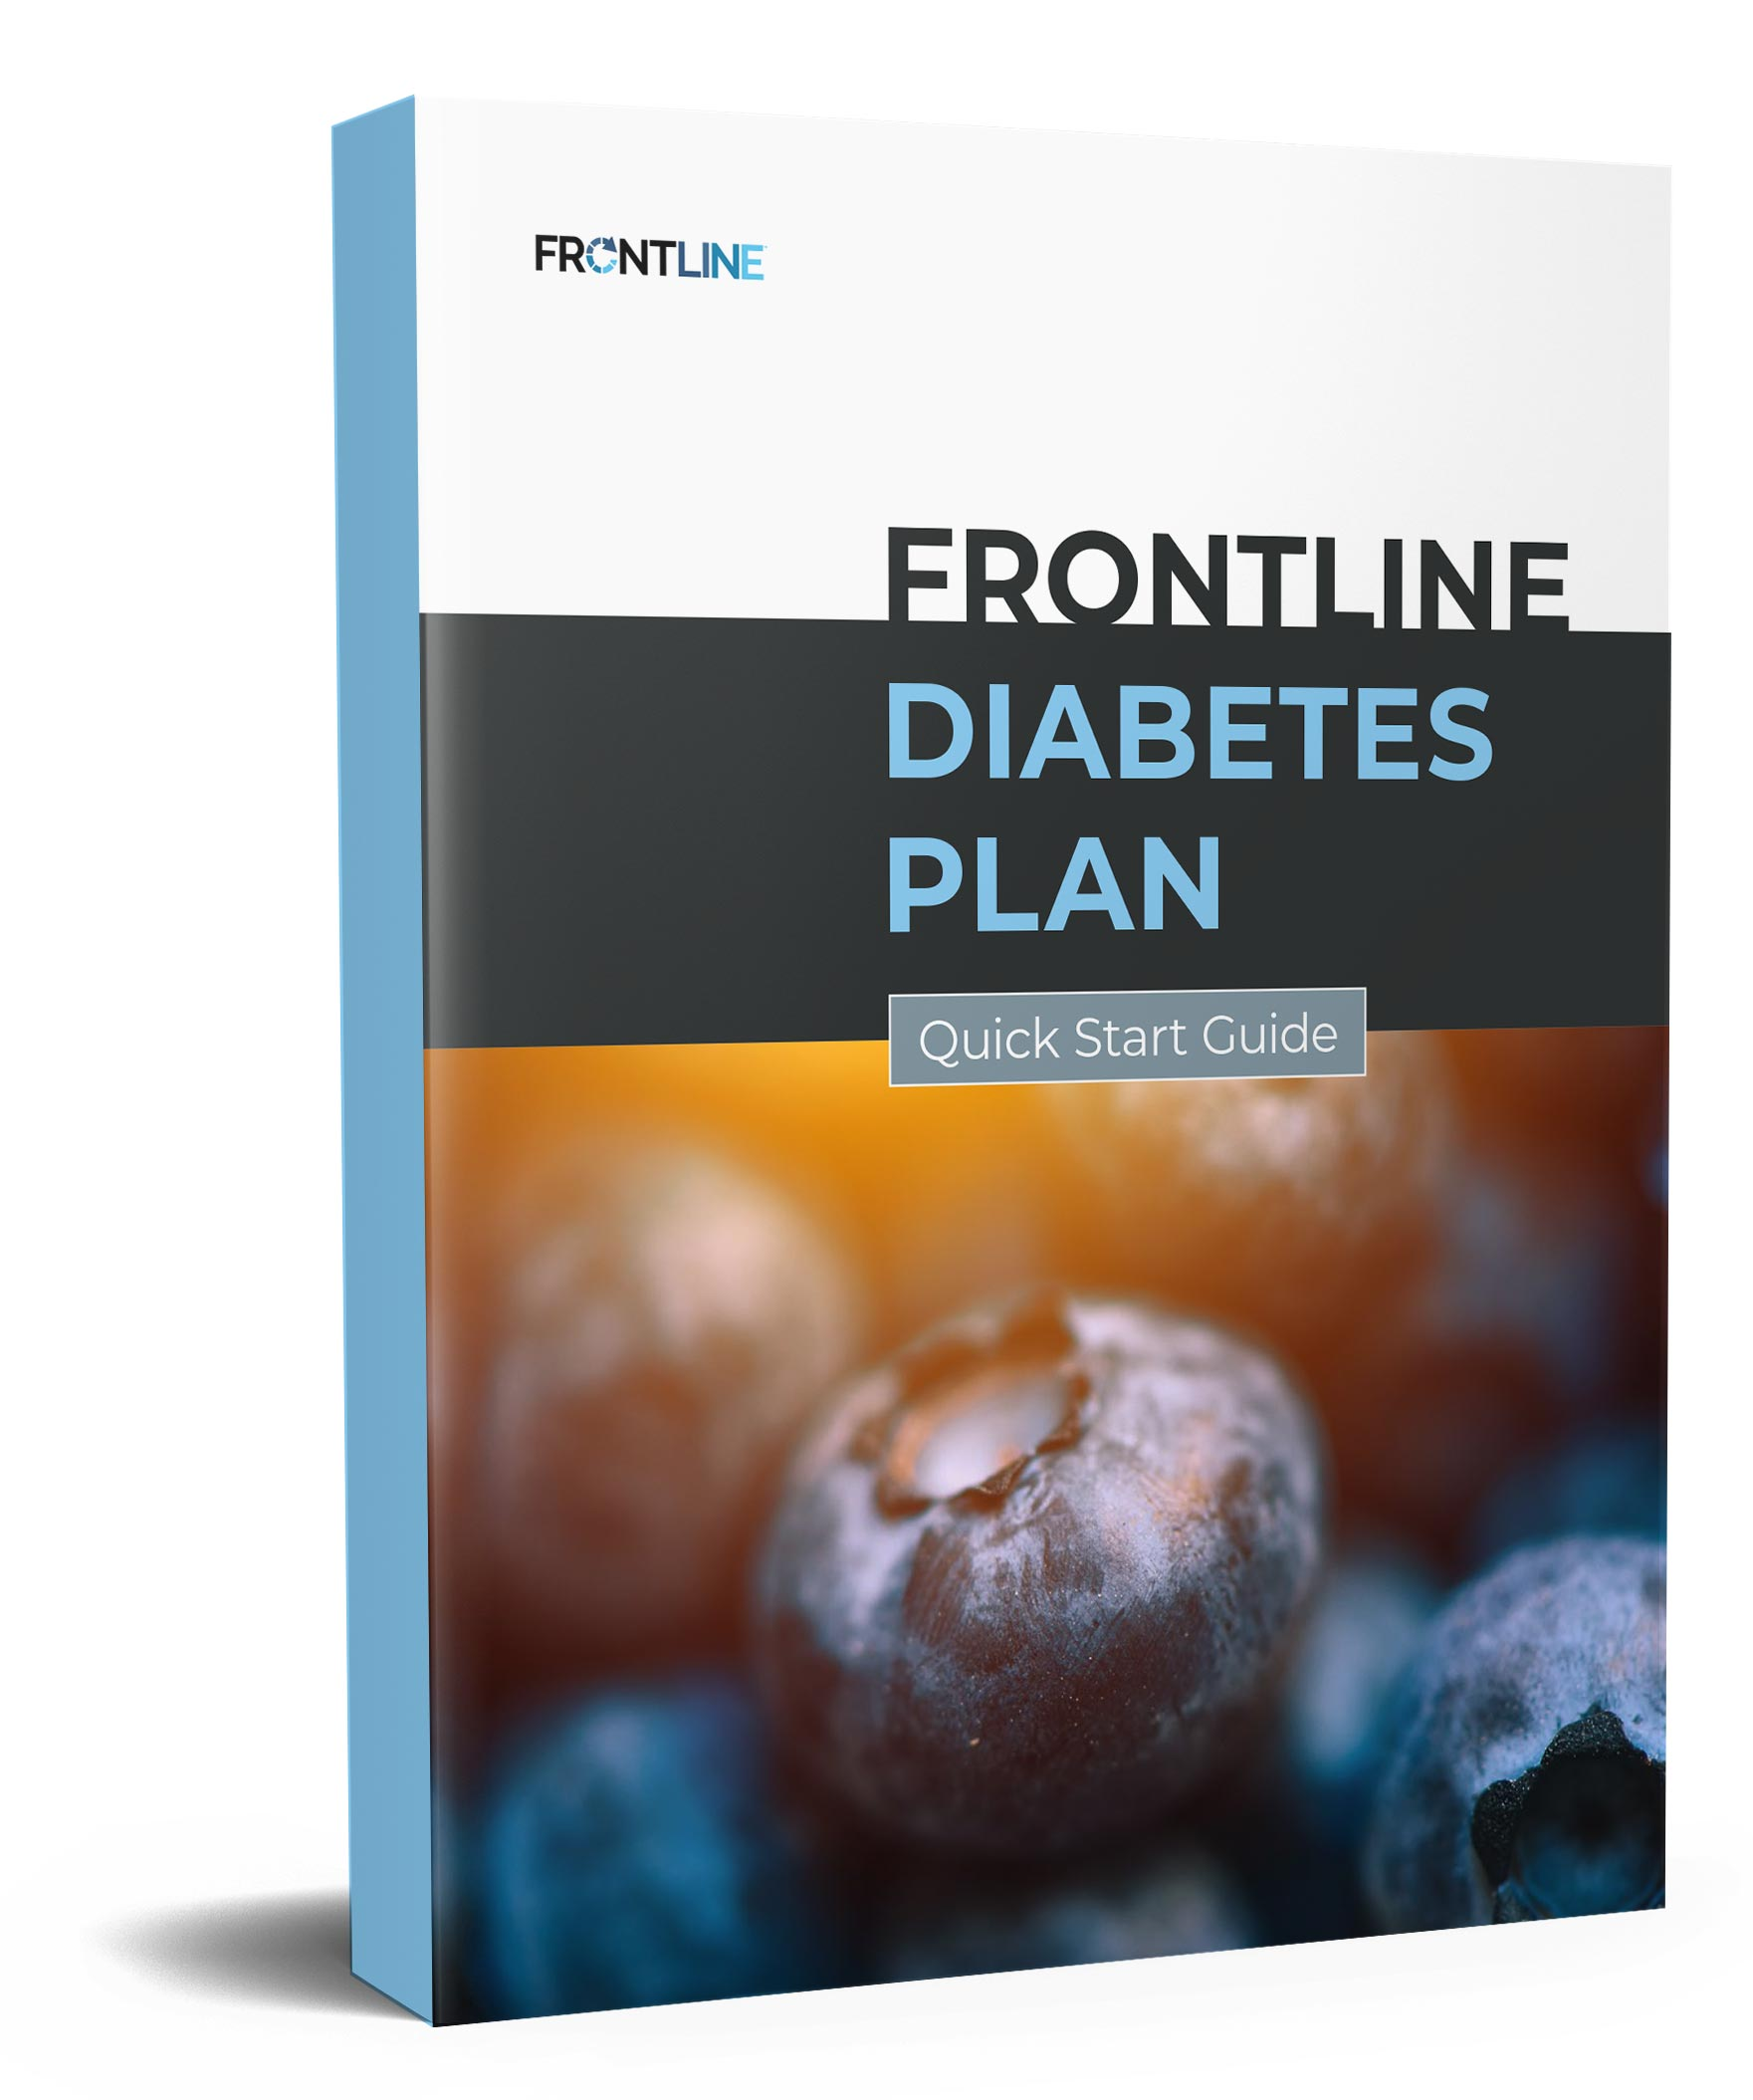 Frontline Diabetes Plan